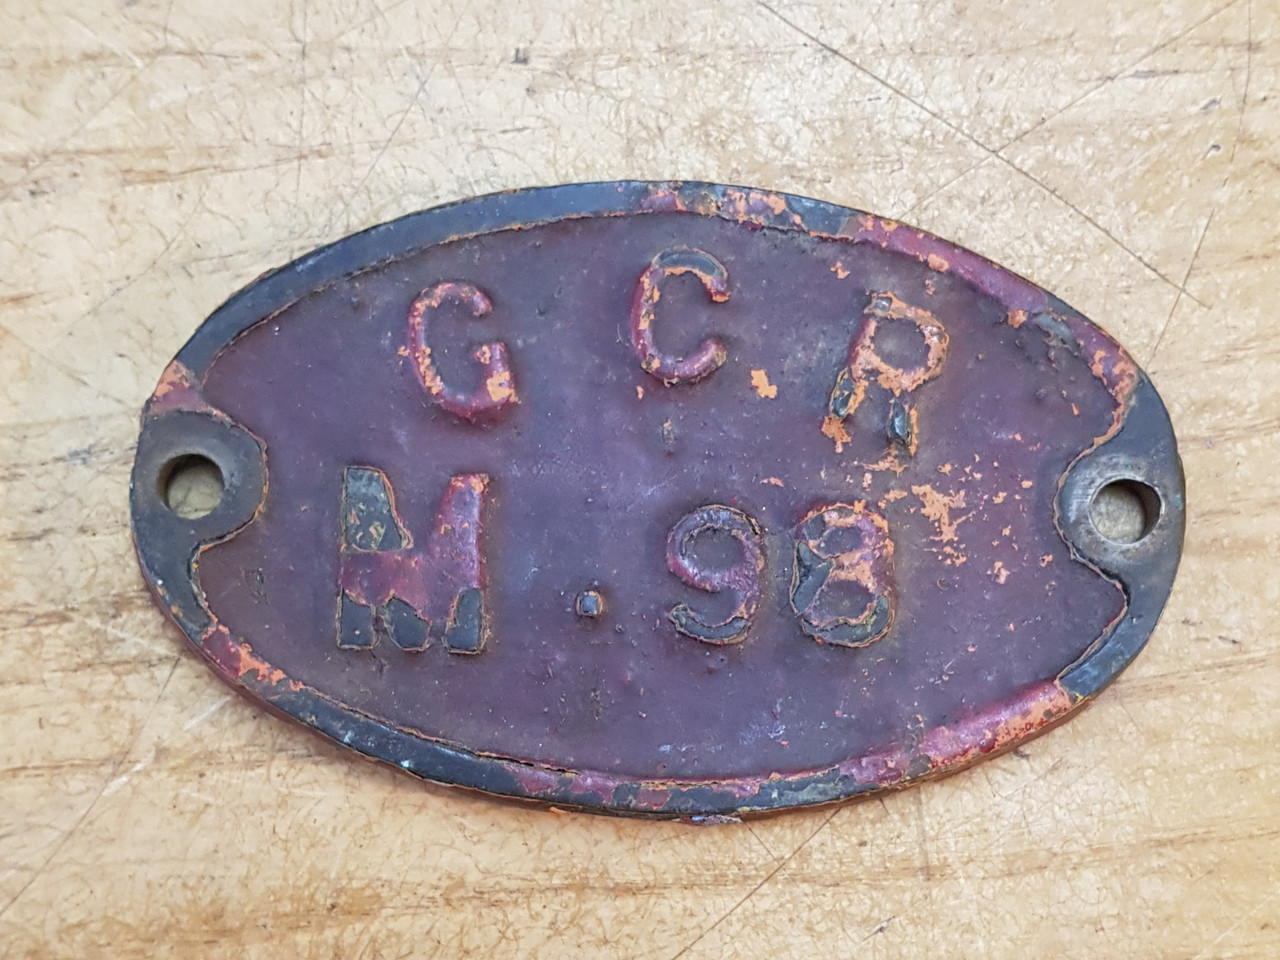 VT 4104. GREACT CENTRAL RAILWAY CAST IRON PLATE FROM A WATER CRANE.